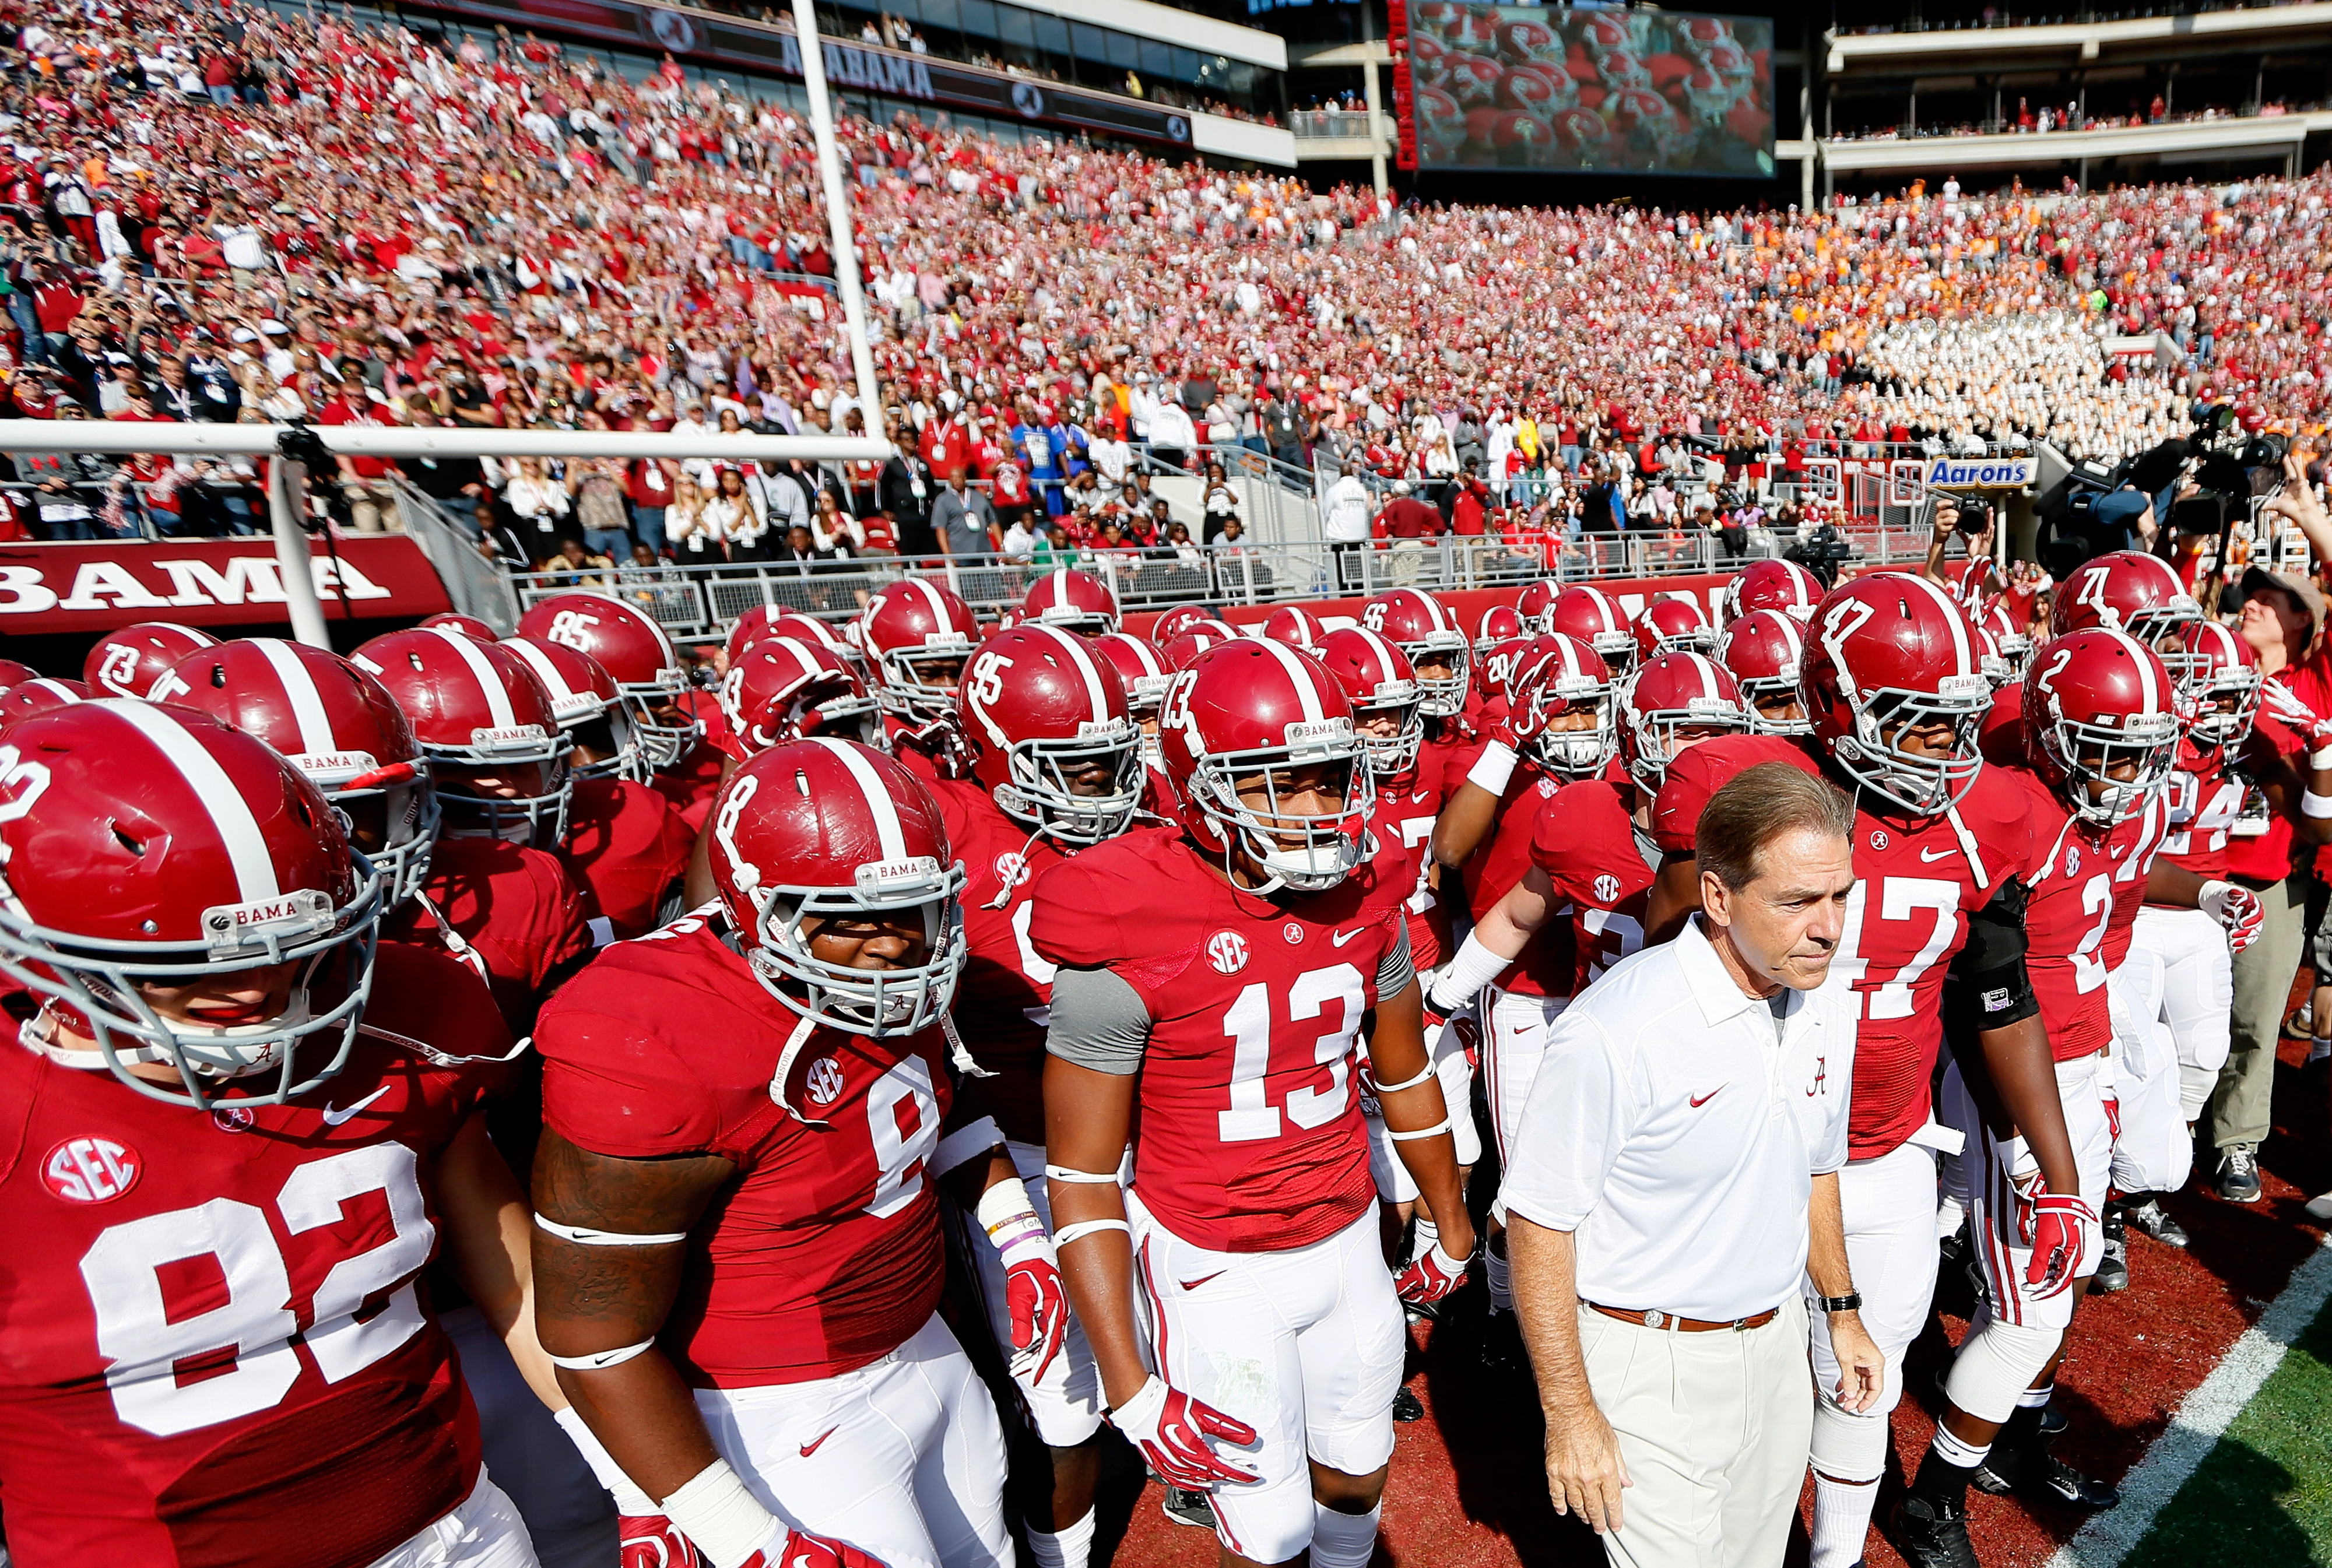 How to watch LSU vs. Alabama: Preview, TV time, odds and more